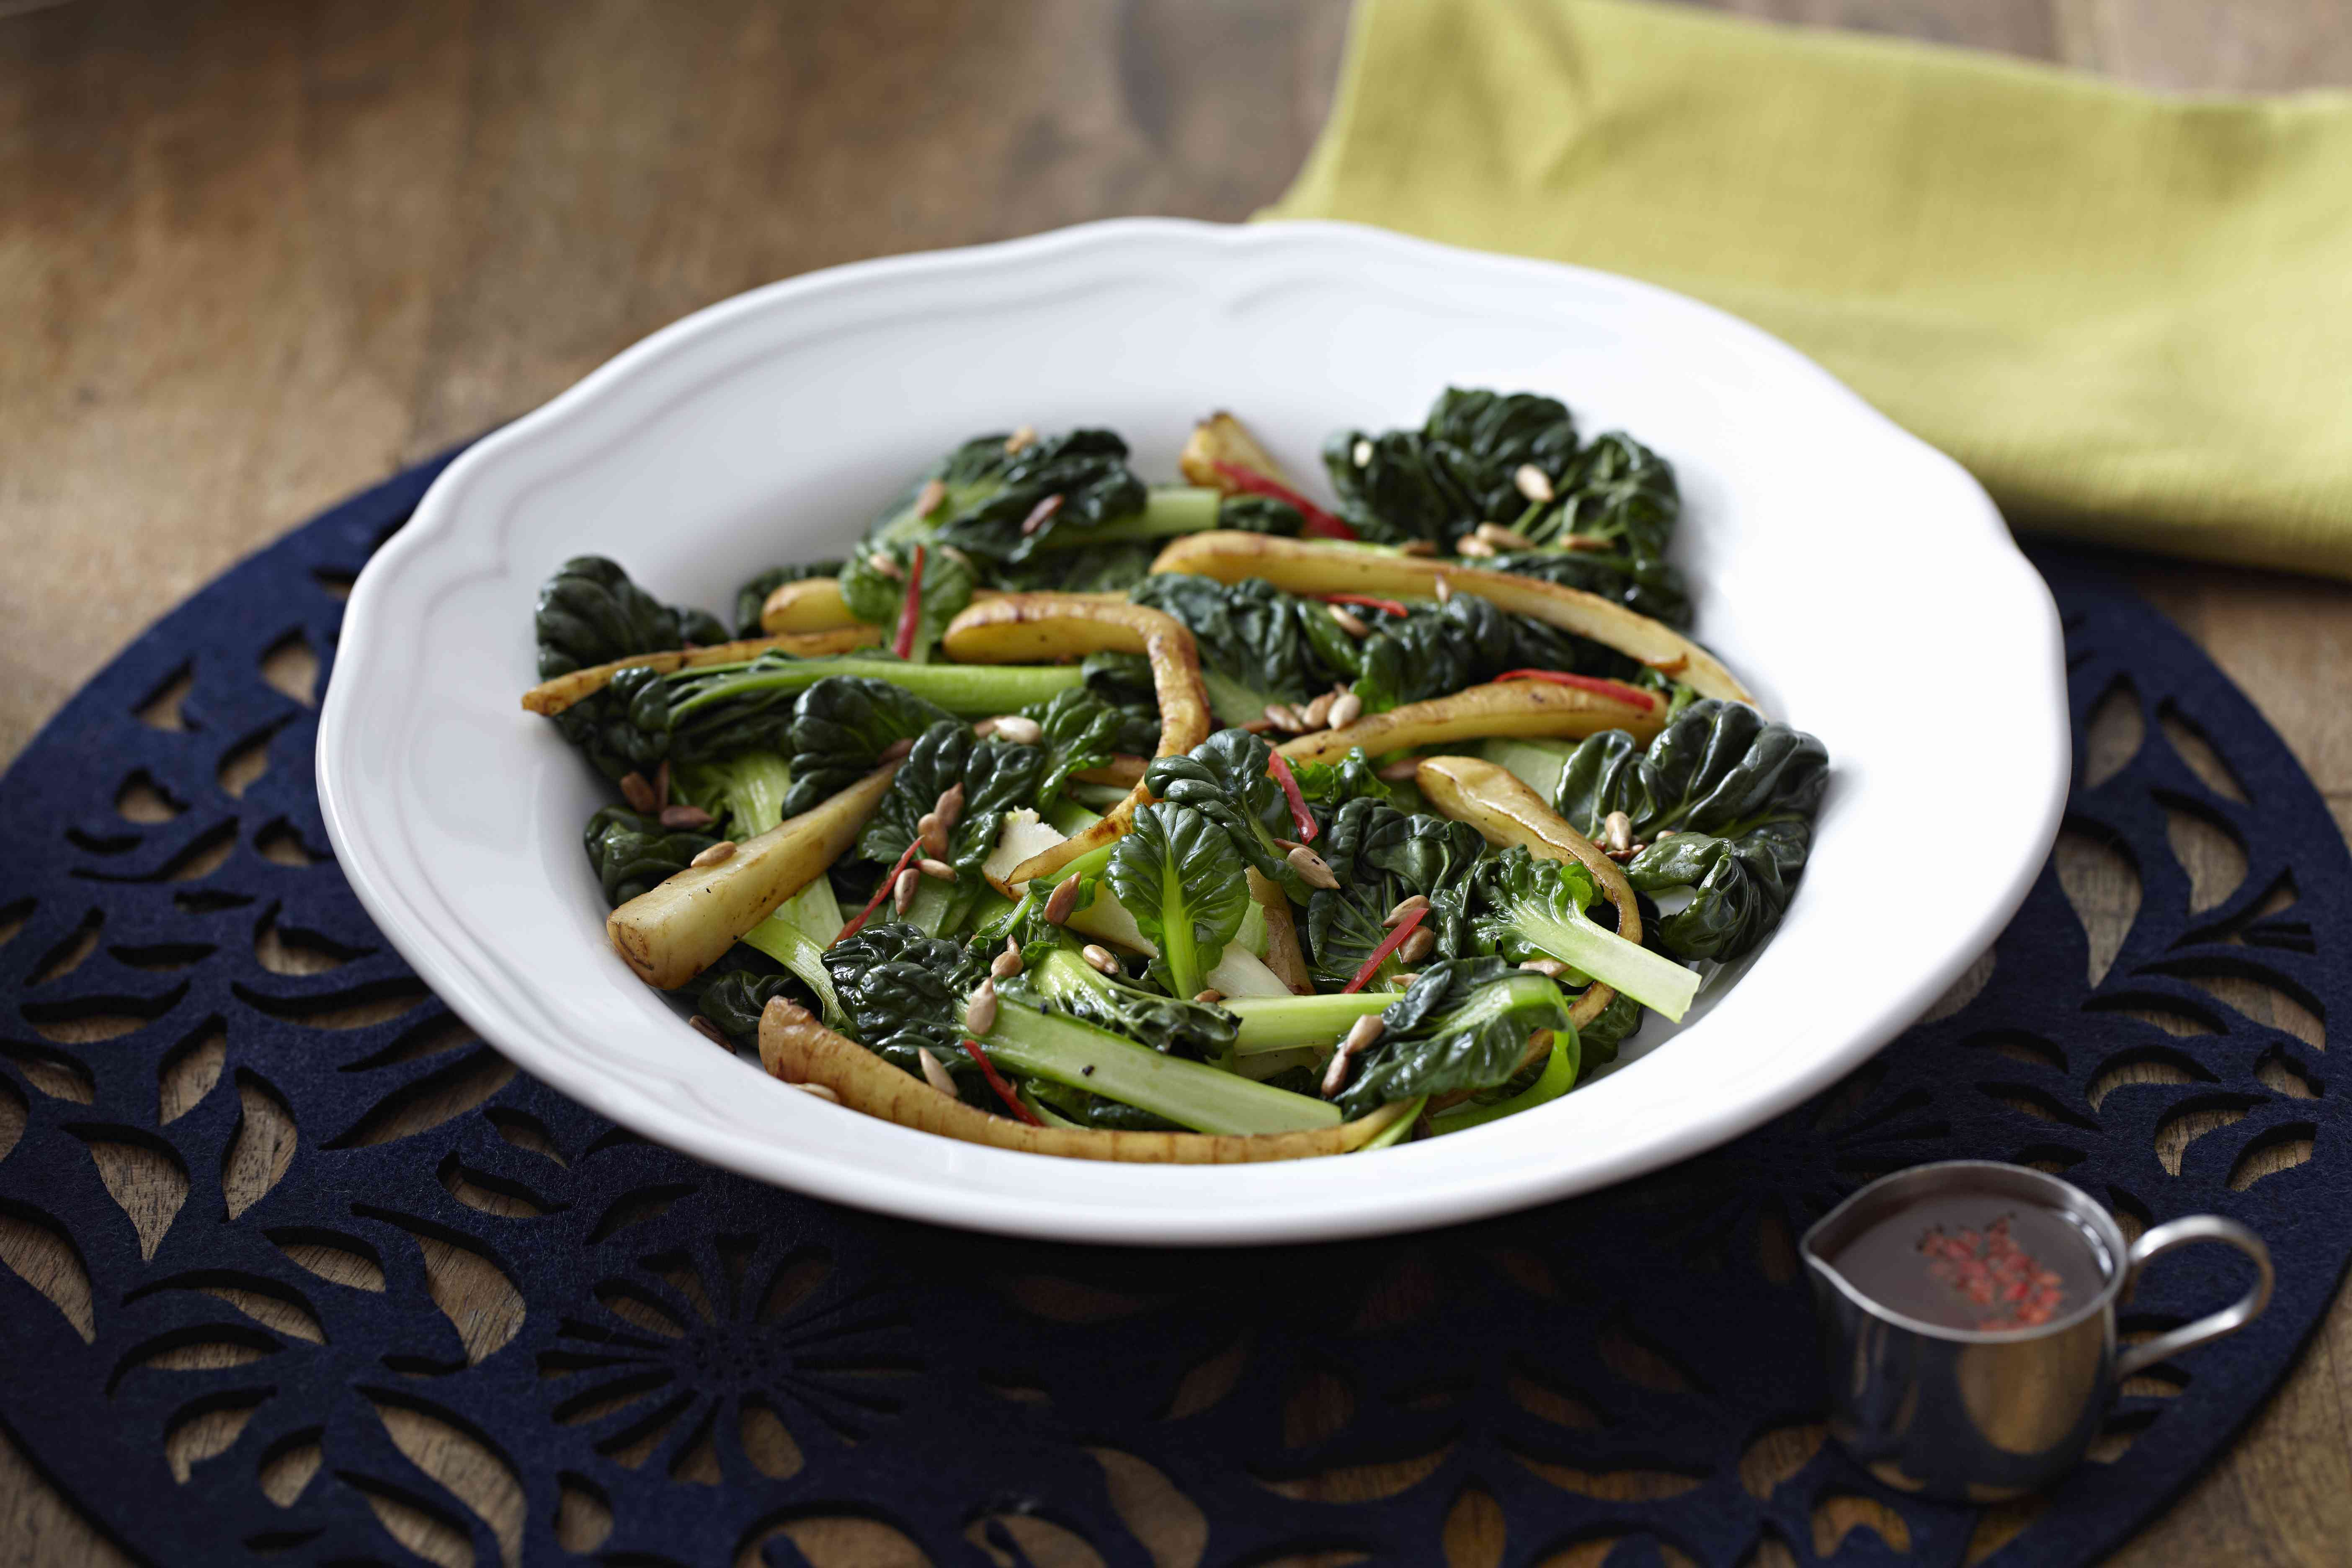 Chard and parsnip salad with pine nuts in bowl